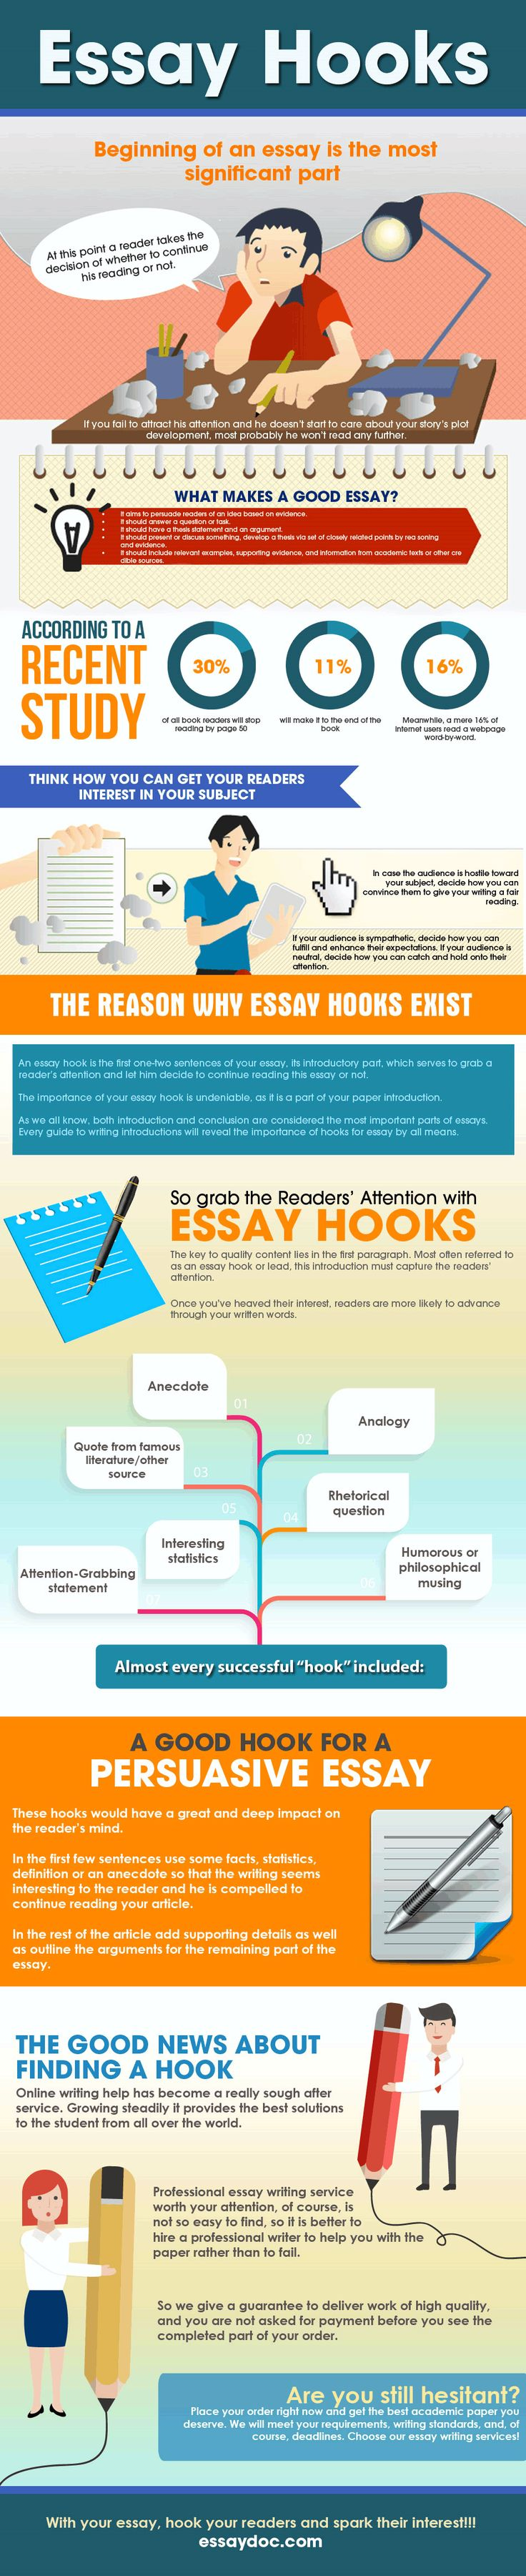 Essay Hooks #infographic #Education  An MBA can always help to get your dream job, or we can help you get that dream job right away. http://recruitingforgood.com/